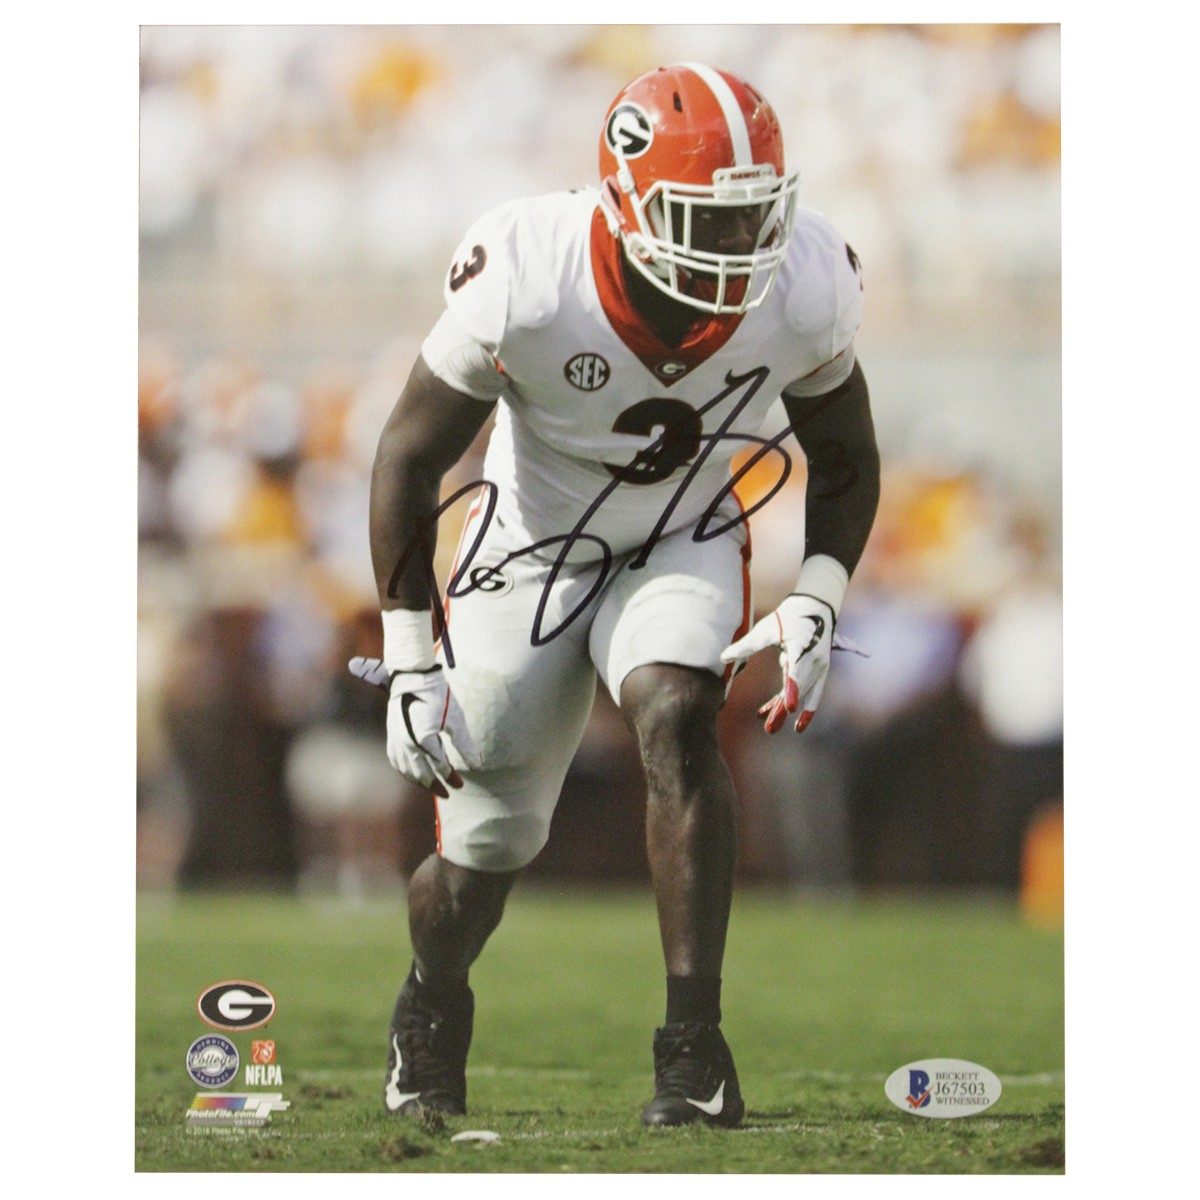 reputable site 6472d 94390 Roquan Smith Georgia Bulldogs Autographed Signed 8x10 Photo ...